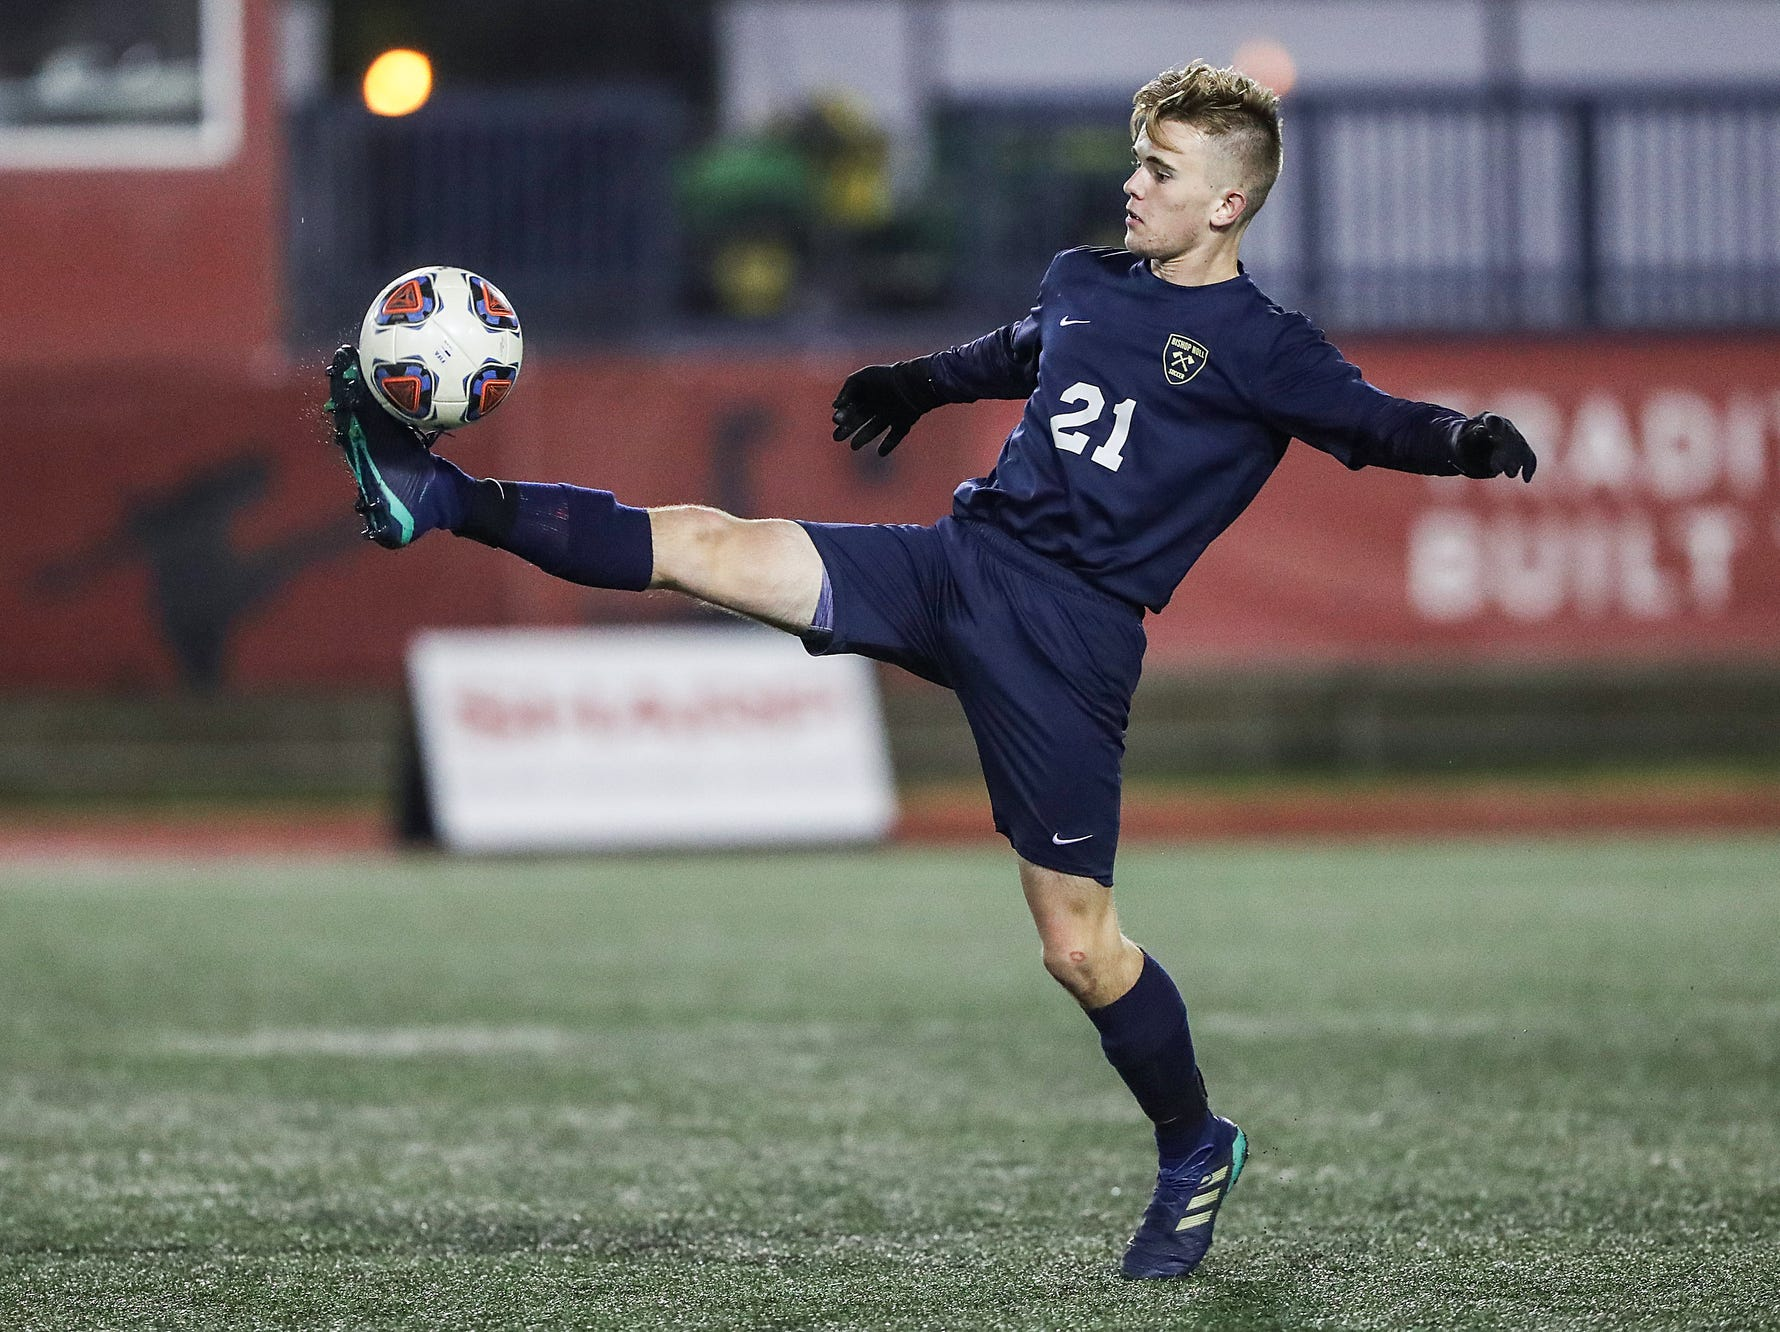 Hammond Bishop Noll Warriors midfielder Noah Reid (21) stops the ball during the second half of IHSAA class 2A state finals at IUPUI's Michael A. Carroll Stadium in Indianapolis, Friday, Oct. 26, 2018. Hammond Bishop Noll defeated Cardinal Ritter, 1-0.